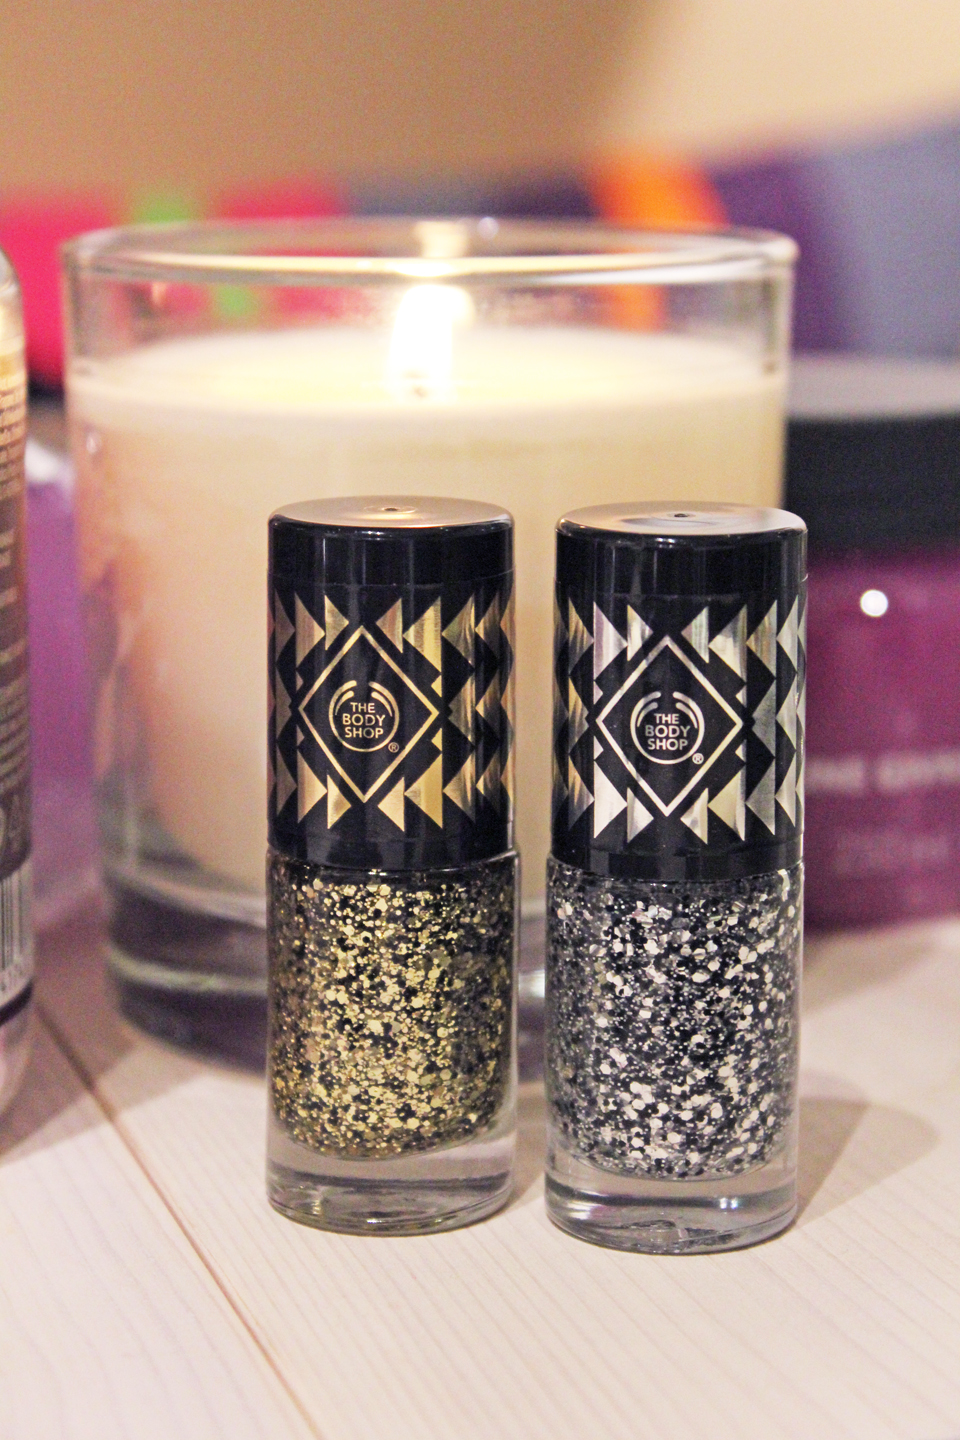 The Body Shop Winter Trend Nailpolish